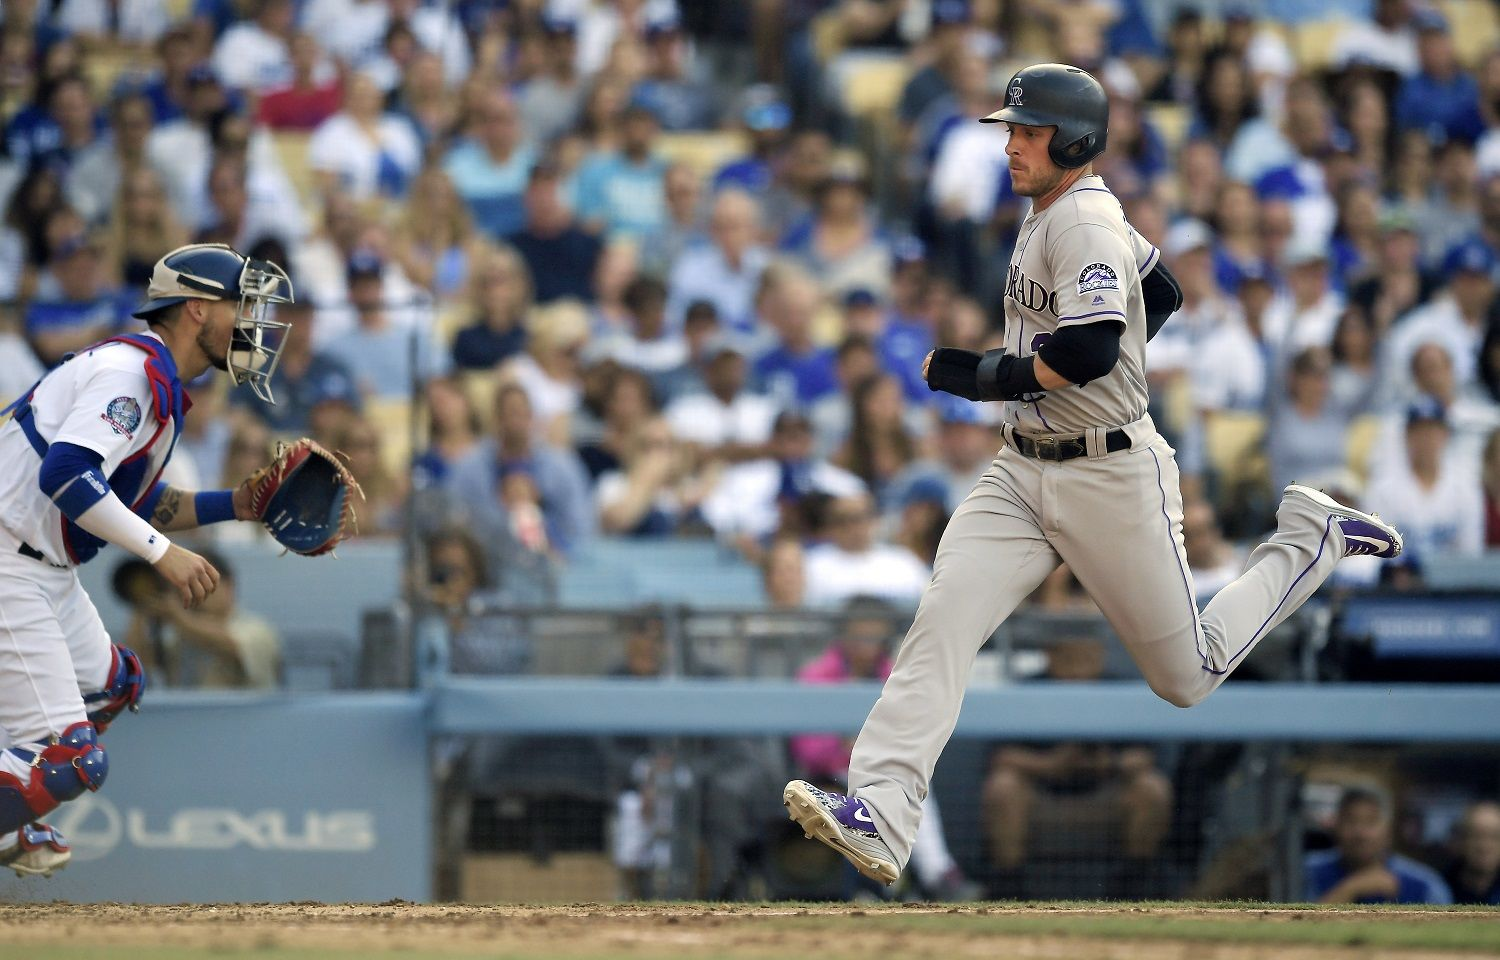 Colorado Rockies' Trevor Story, right, scores on single by Chris Iannetta as Los Angeles Dodgers catcher Yasmani Grandal looks for a throw during the seventh inning of a baseball game Saturday, June 30, 2018, in Los Angeles. (AP Photo/Mark J. Terrill)